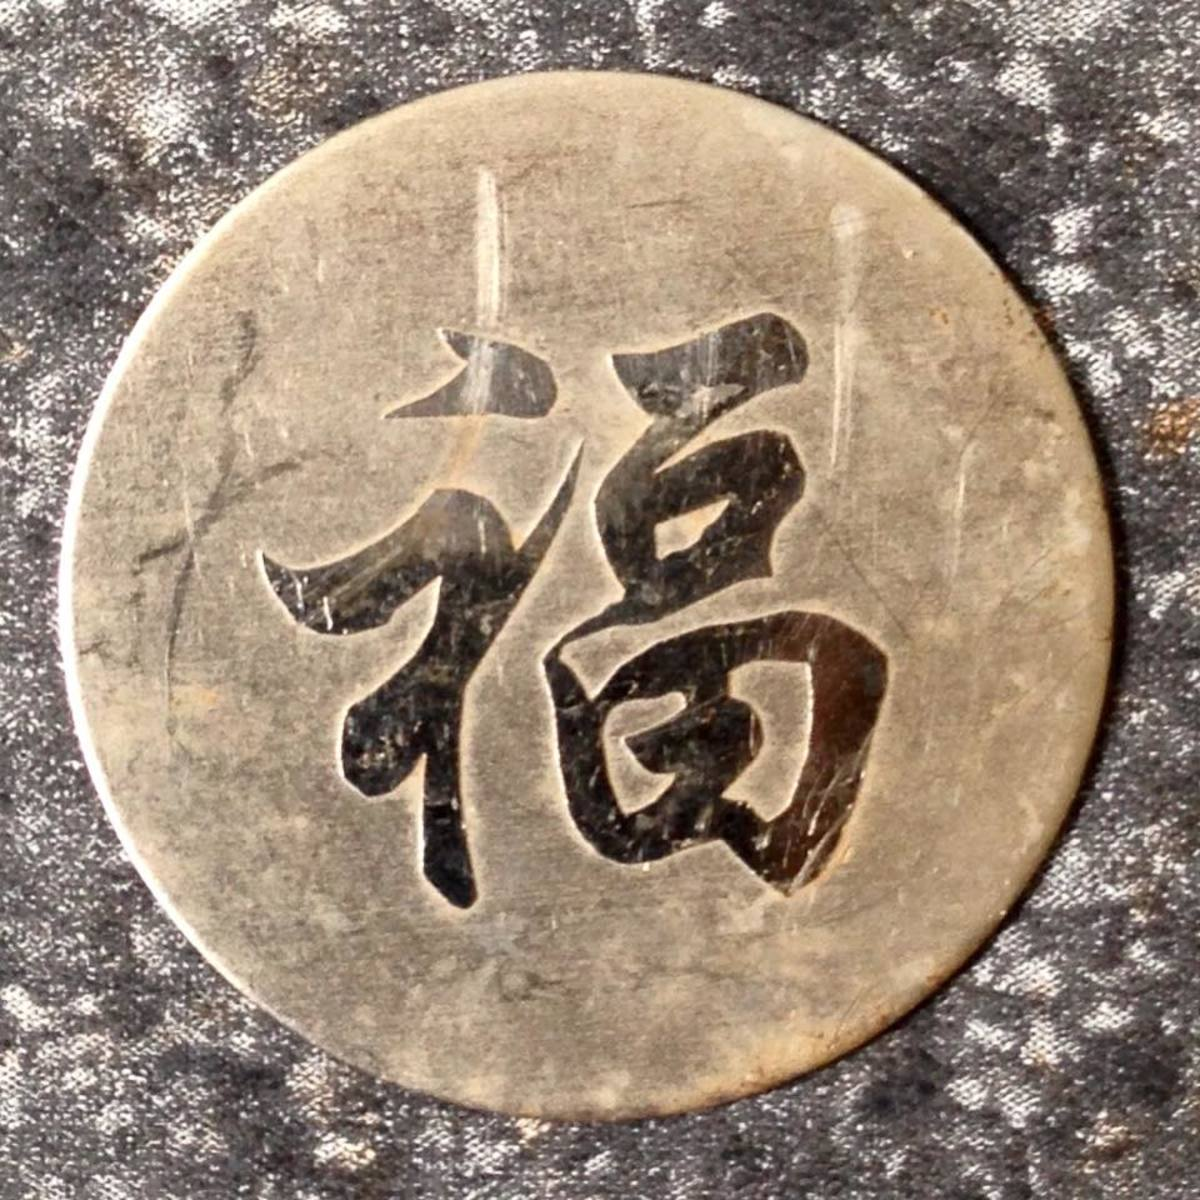 Chinese: Blessing, Fortune, Luck.